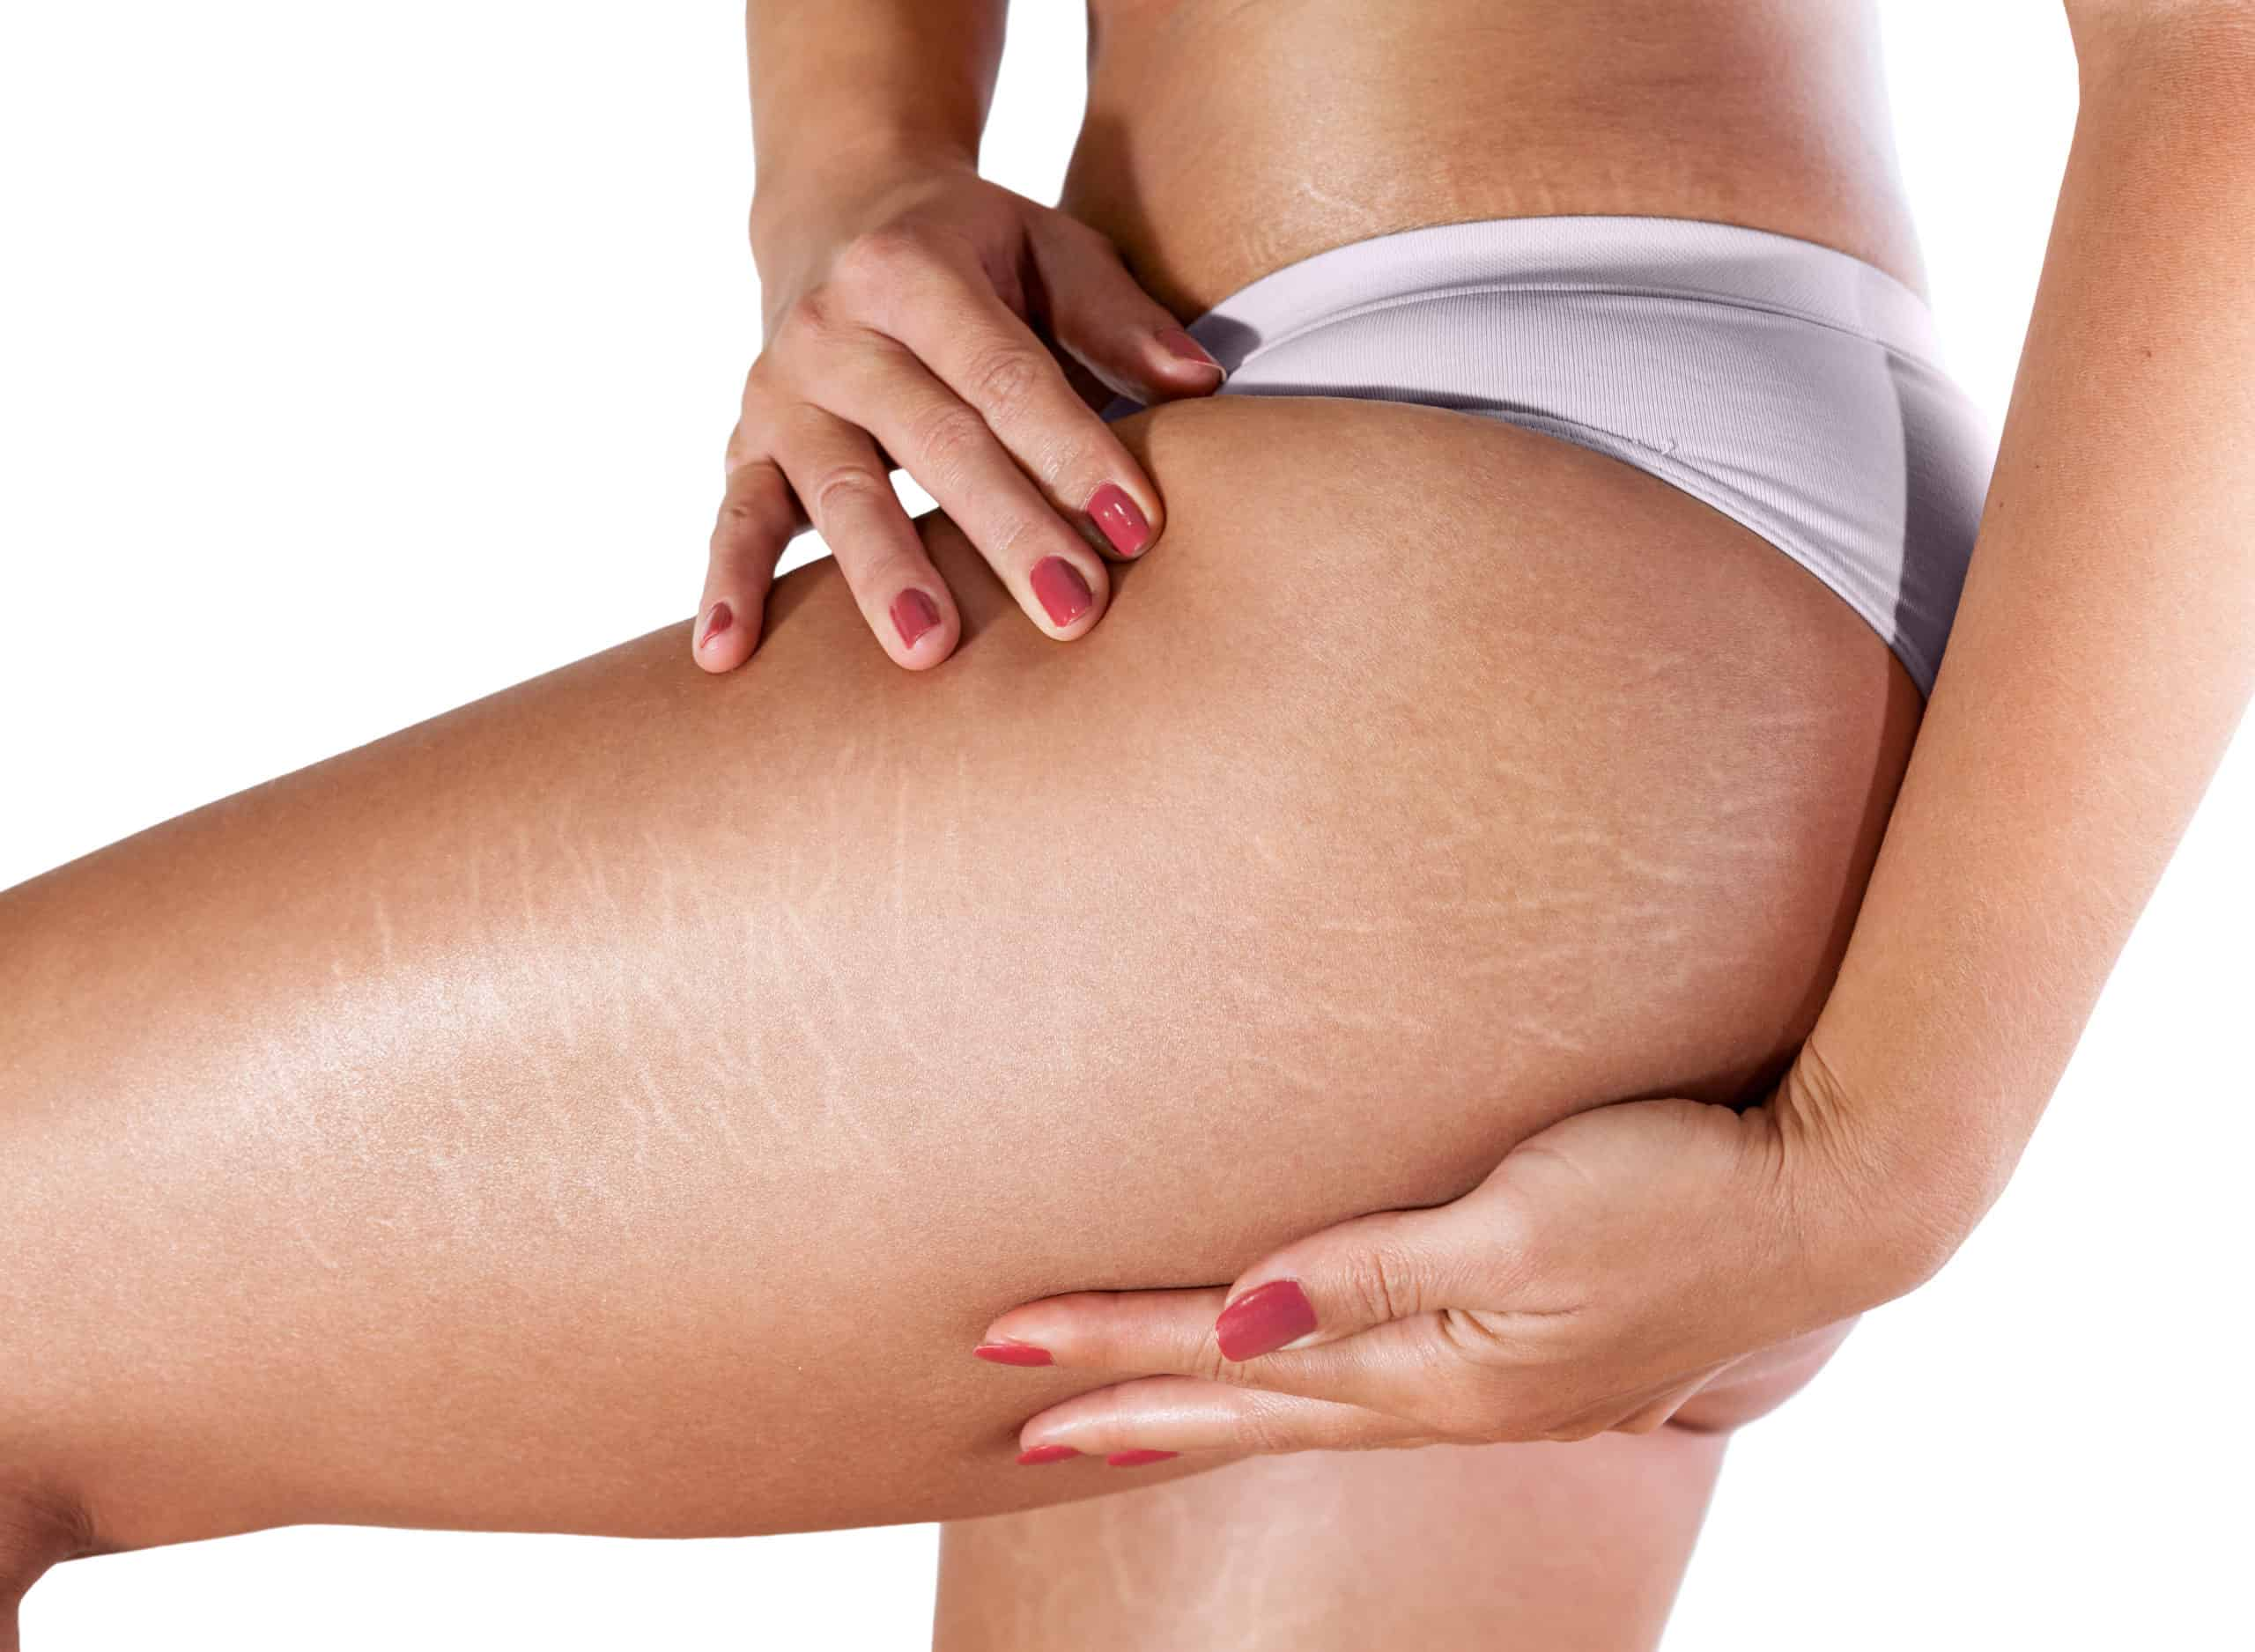 Using RF Microneedling & Fractional Laser Combo Treatment for Stretch Marks. Does it work?